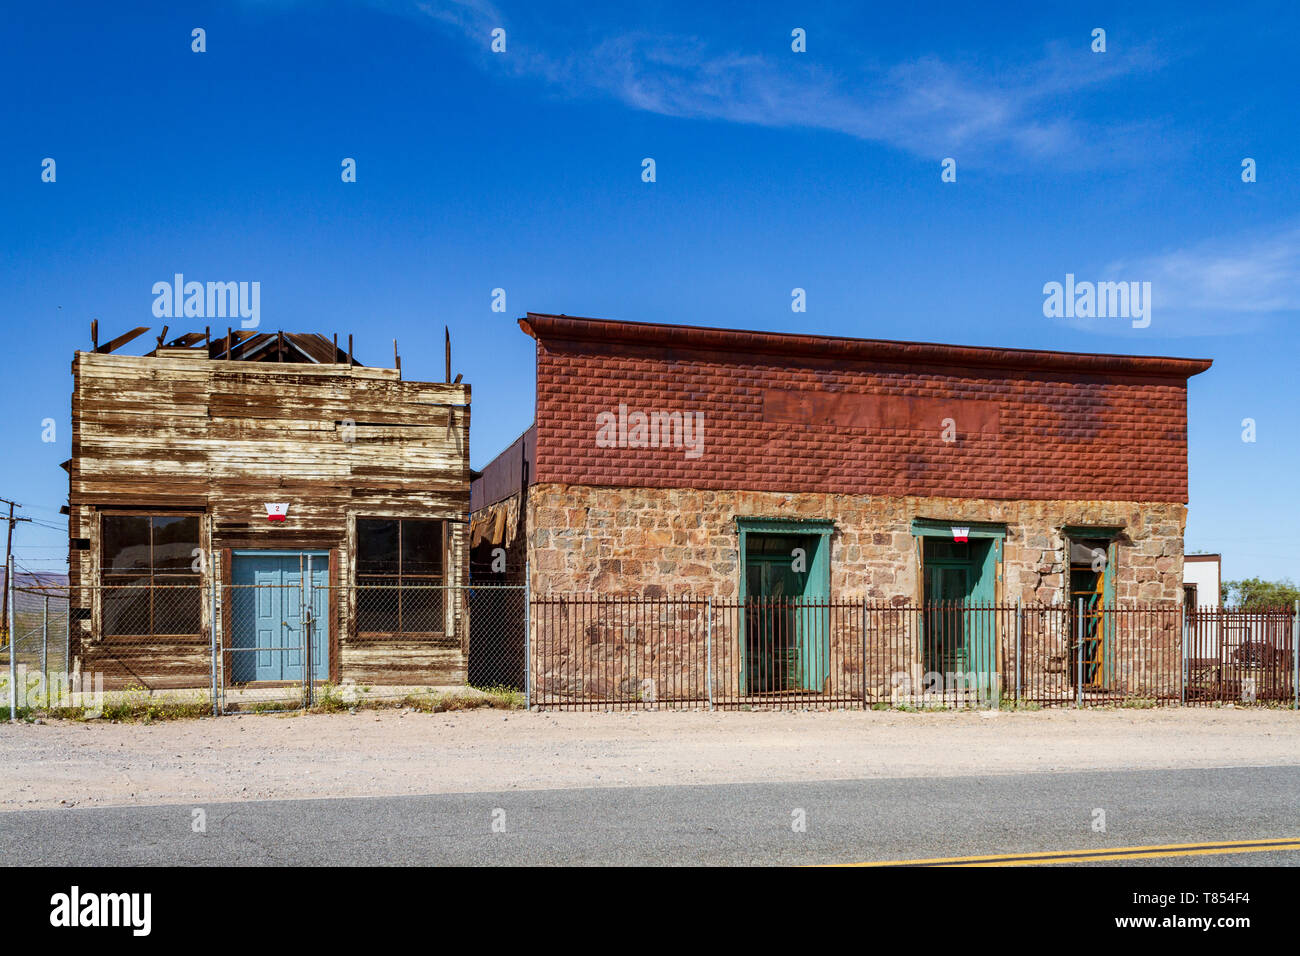 Barstow, CA / USA – April 14, 2019: Built in 1883, the Stone Hotel was a railroad hotel and restaurant for Southern Pacific Railroad in Daggett, Calif - Stock Image